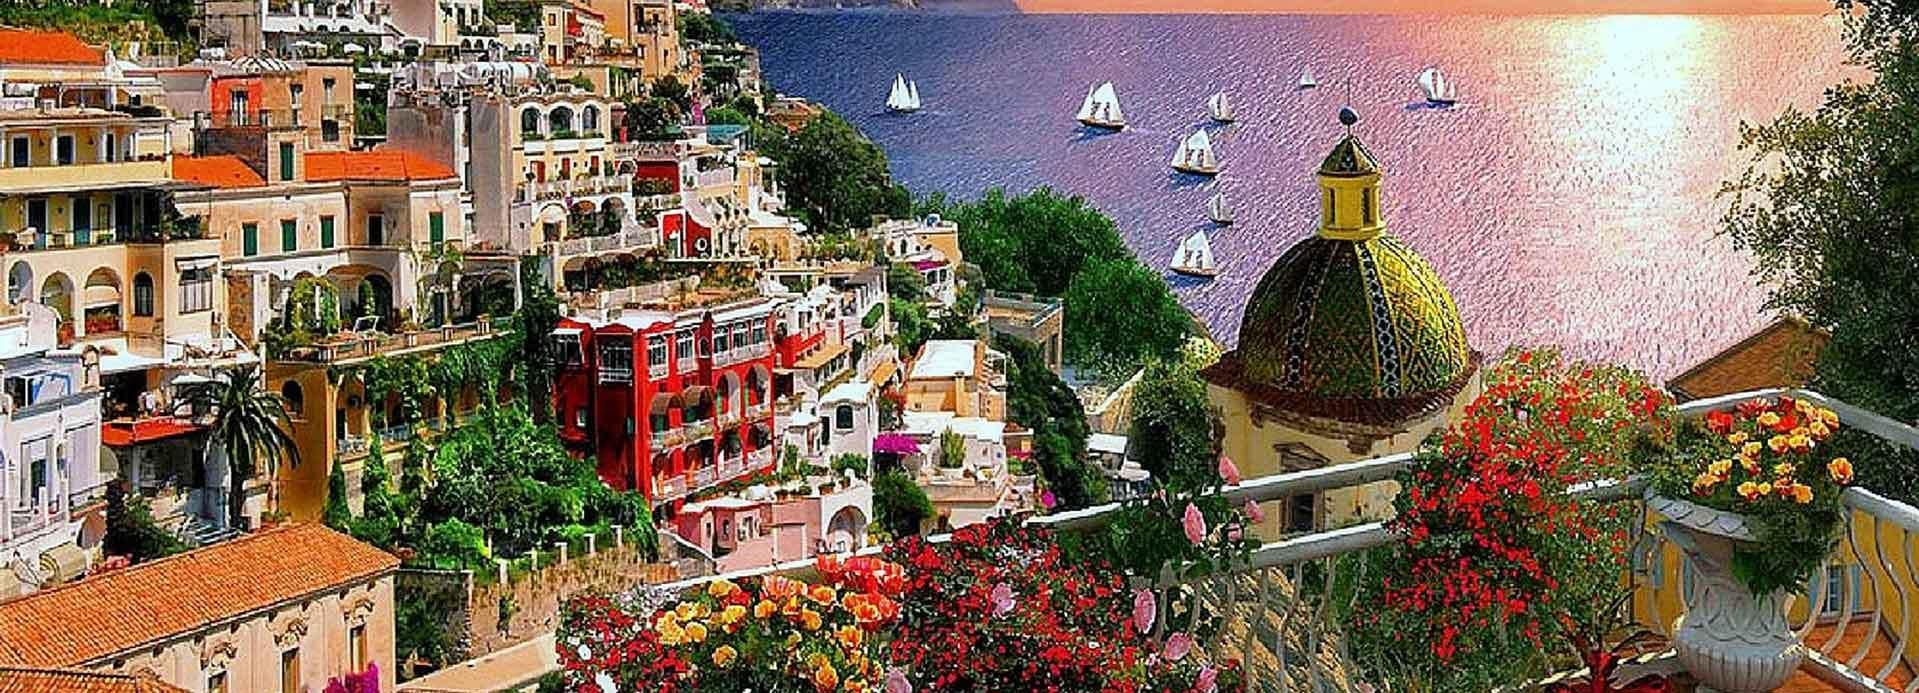 Positano, Amalfi and Ravello Small group from Sorrento